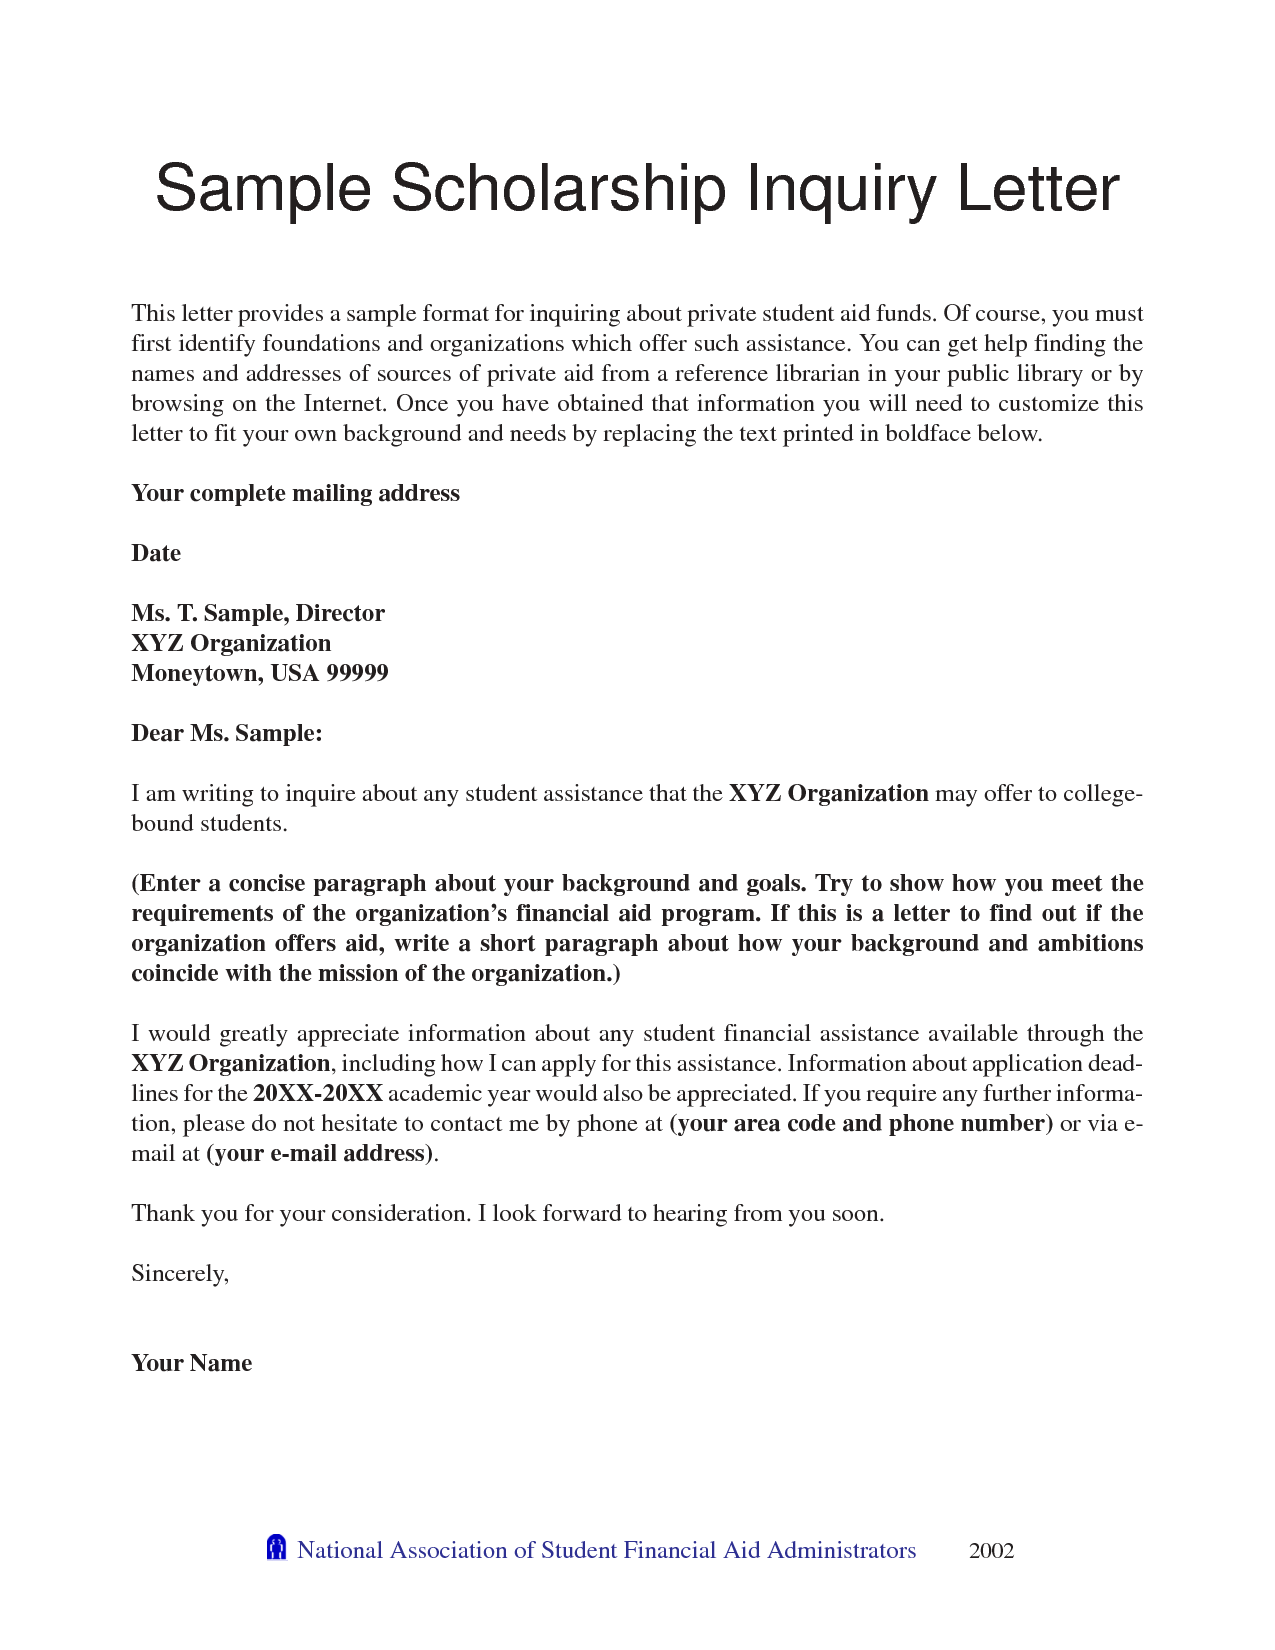 019 Collection Of Solutions College Scholarship Recommendation Letter Sample For Format Layout Scholarships Without Essays Essay Stunning In Texas With No Required Students Examples Full